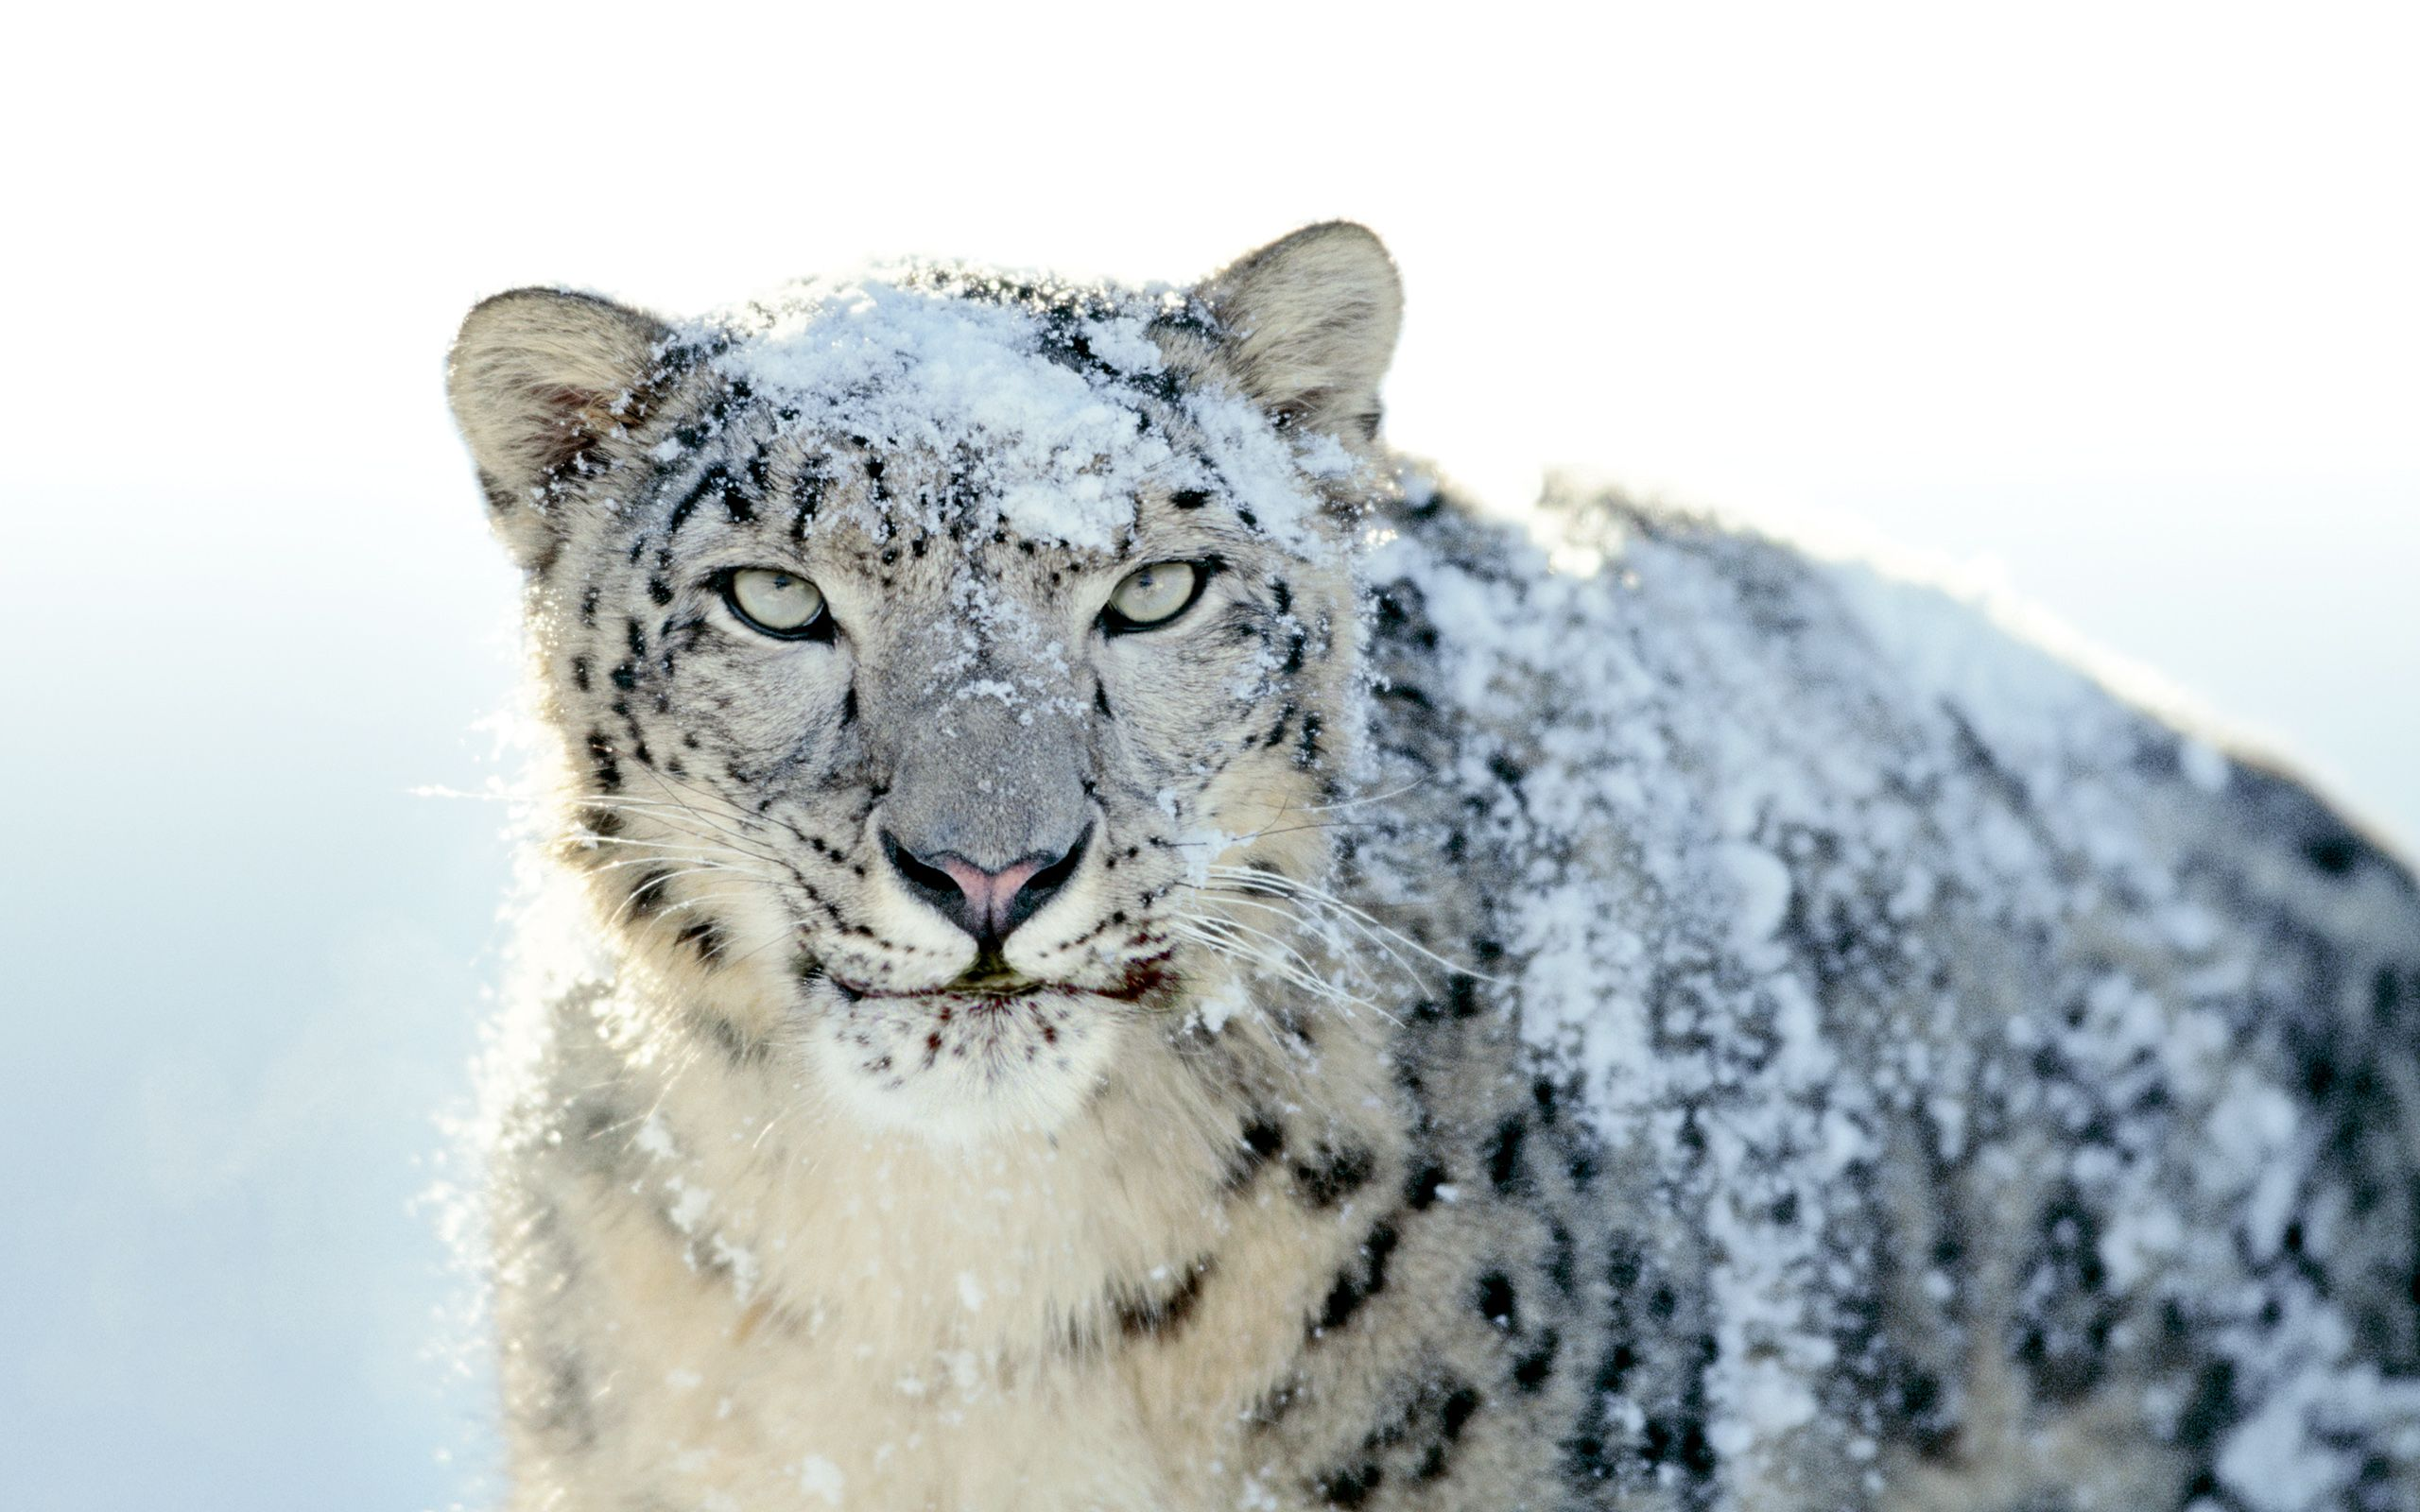 Snow Leopard Wallpaper – The background That Can Enhance